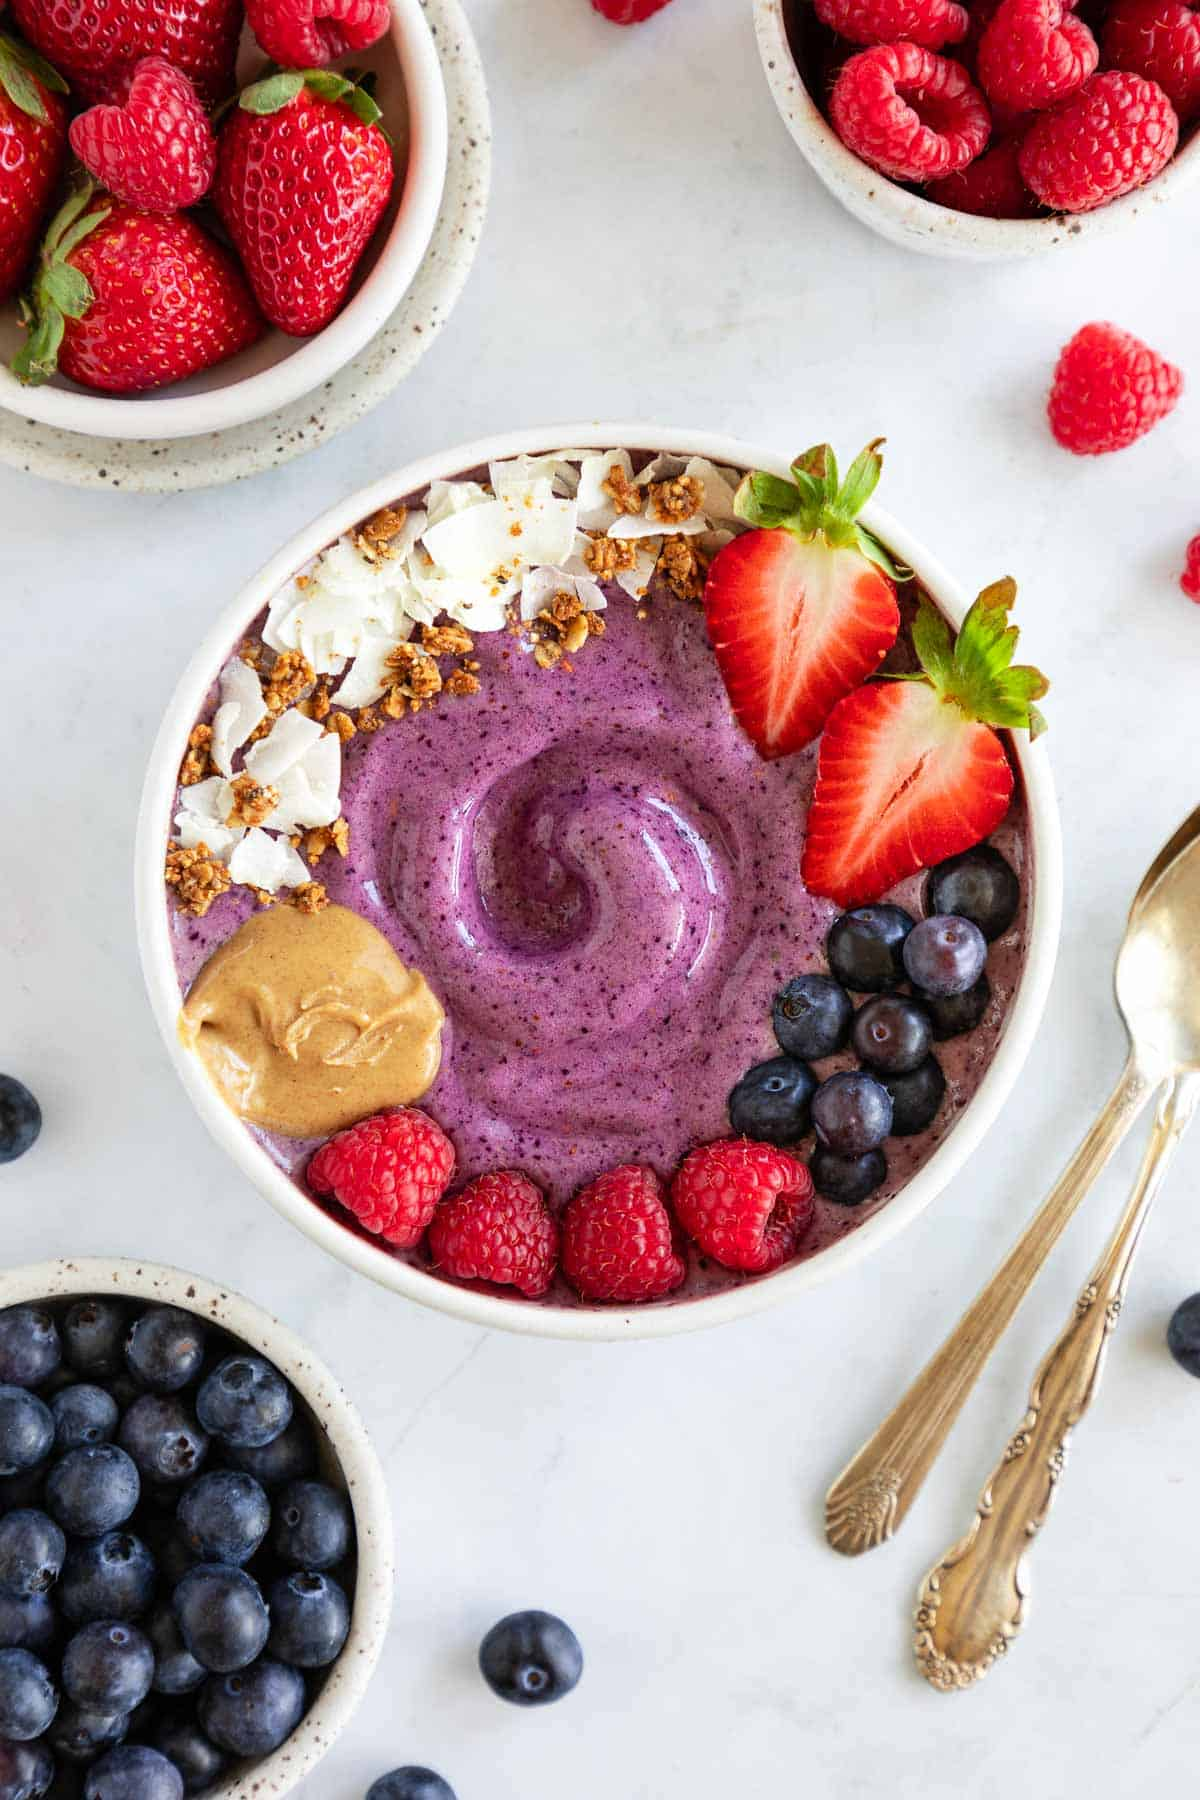 a berry smoothie bowl surrounded by bowls of strawberries, raspberries, and blueberries